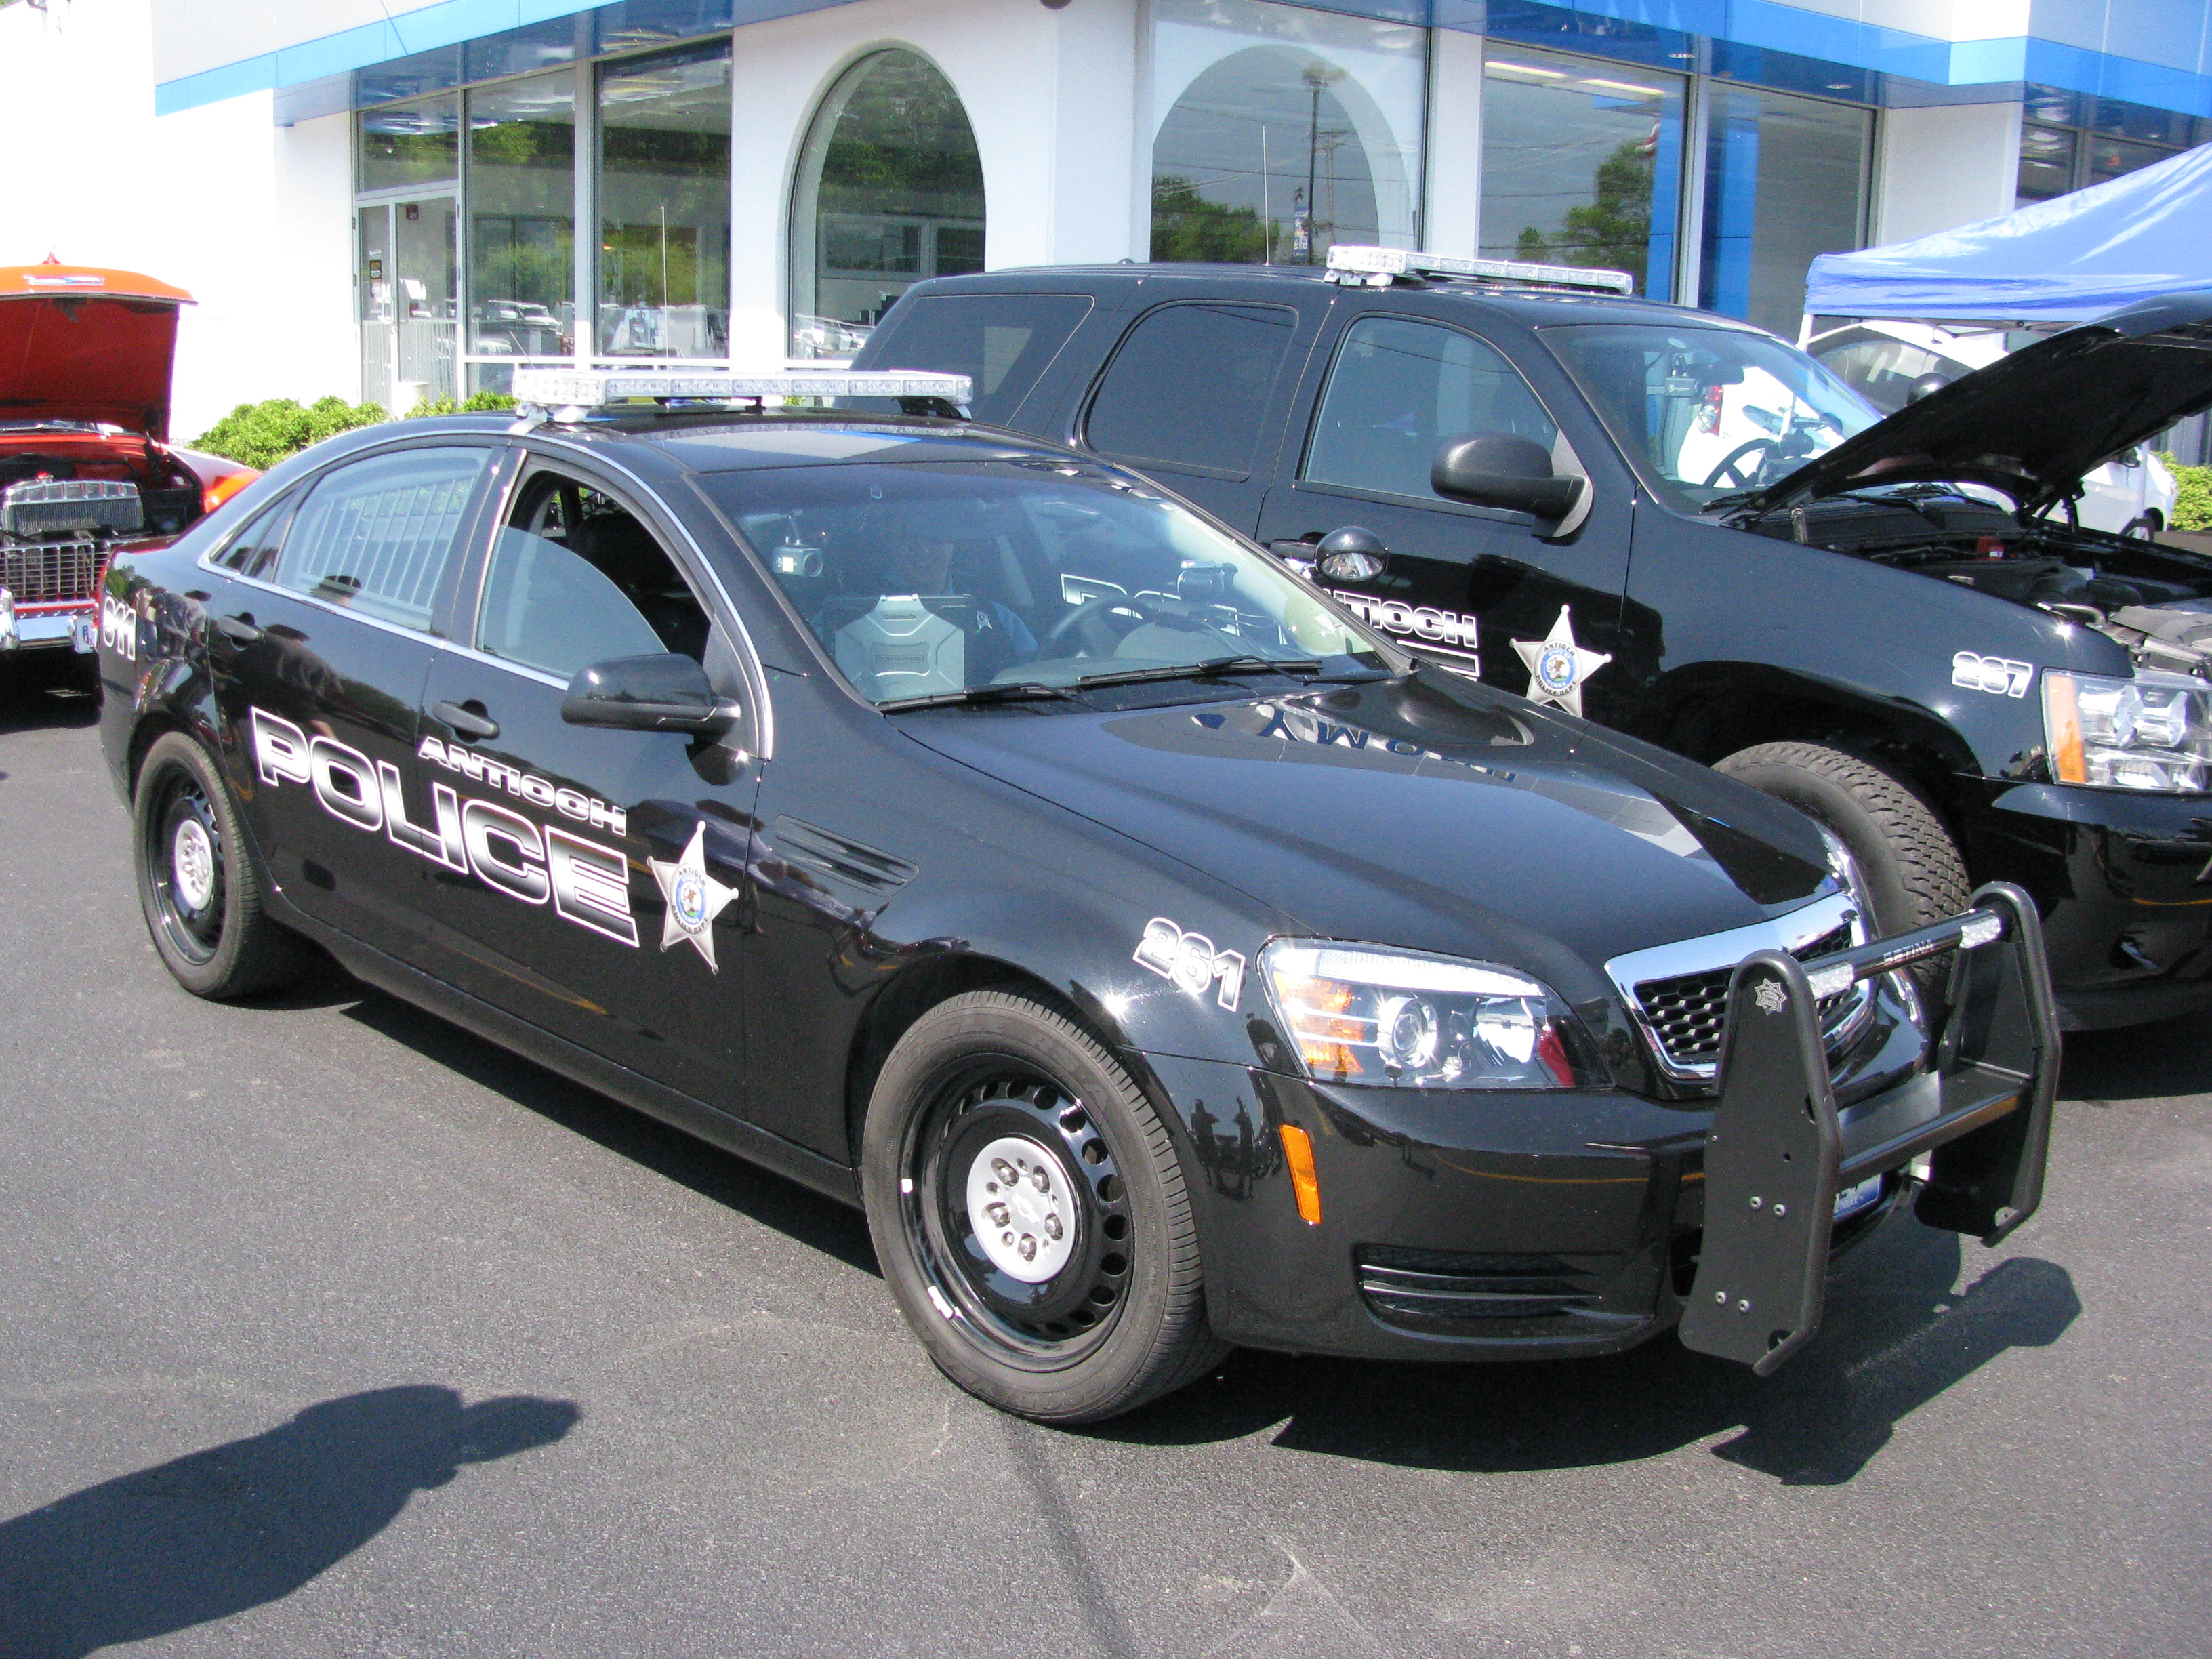 Chevy Caprice PPV Recalled for Power Steering Loss - GM ...